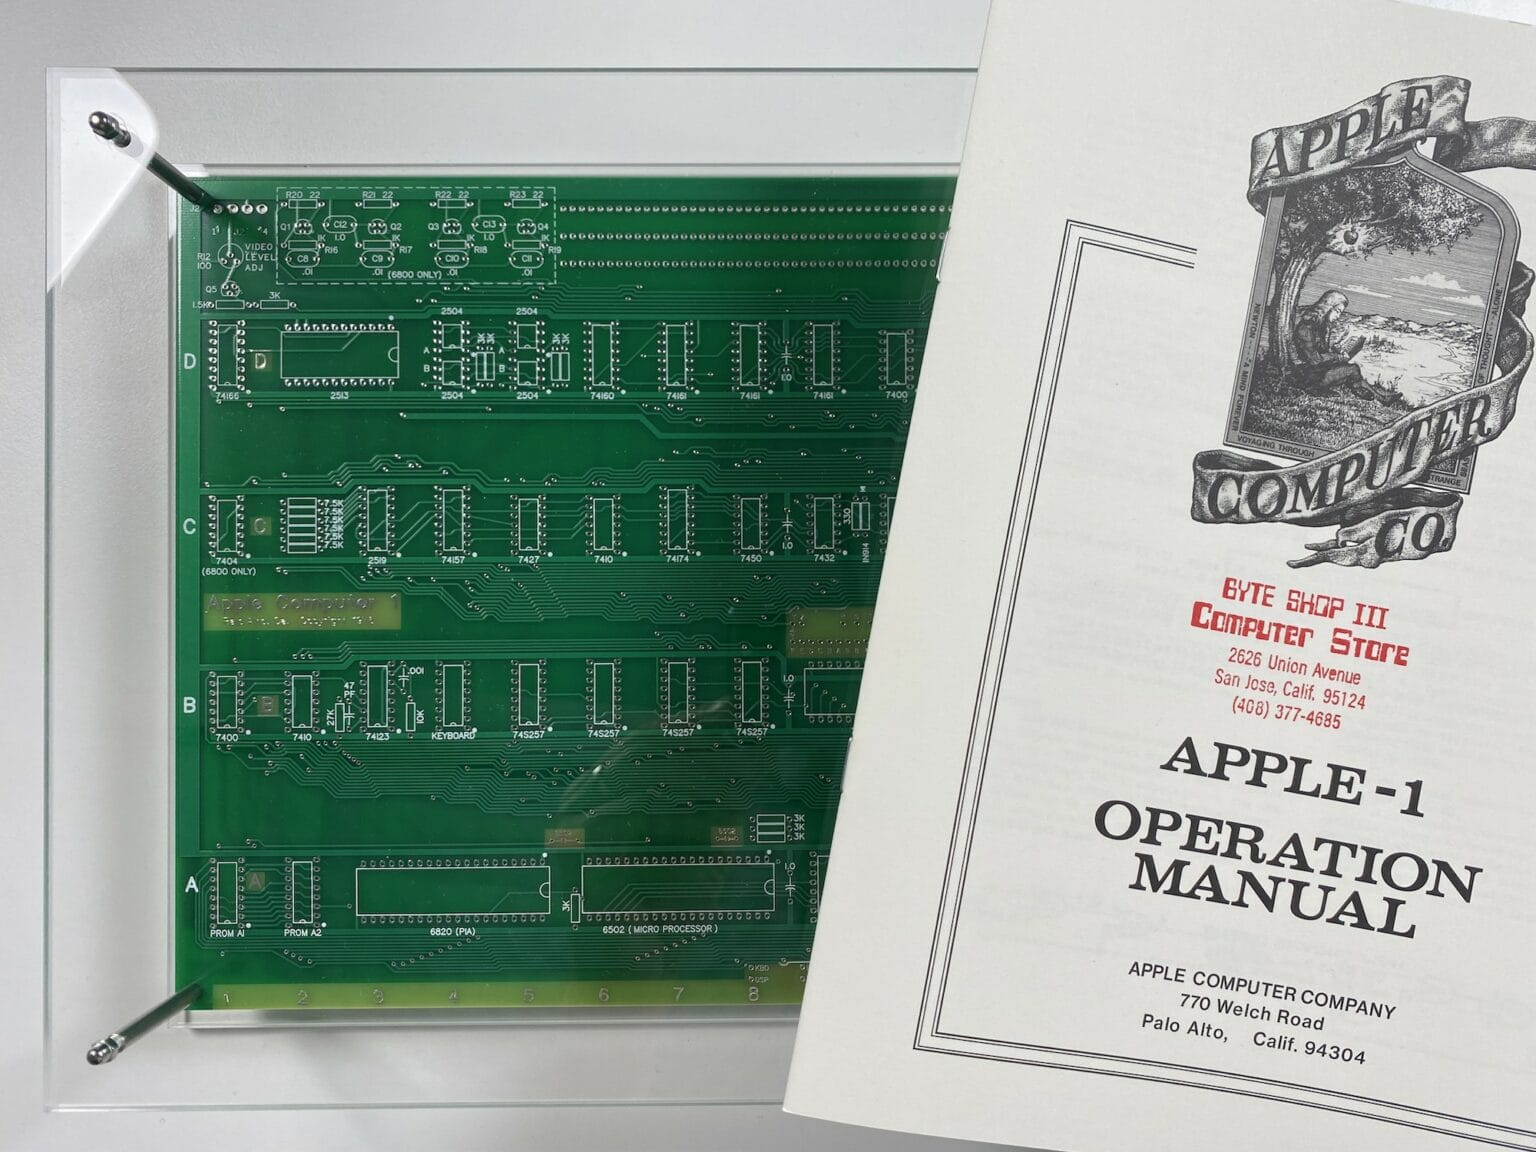 Did you know you can purchase a perfect recreation of the Apple-1 Operation Manual, along with a custom-made case to display it in?